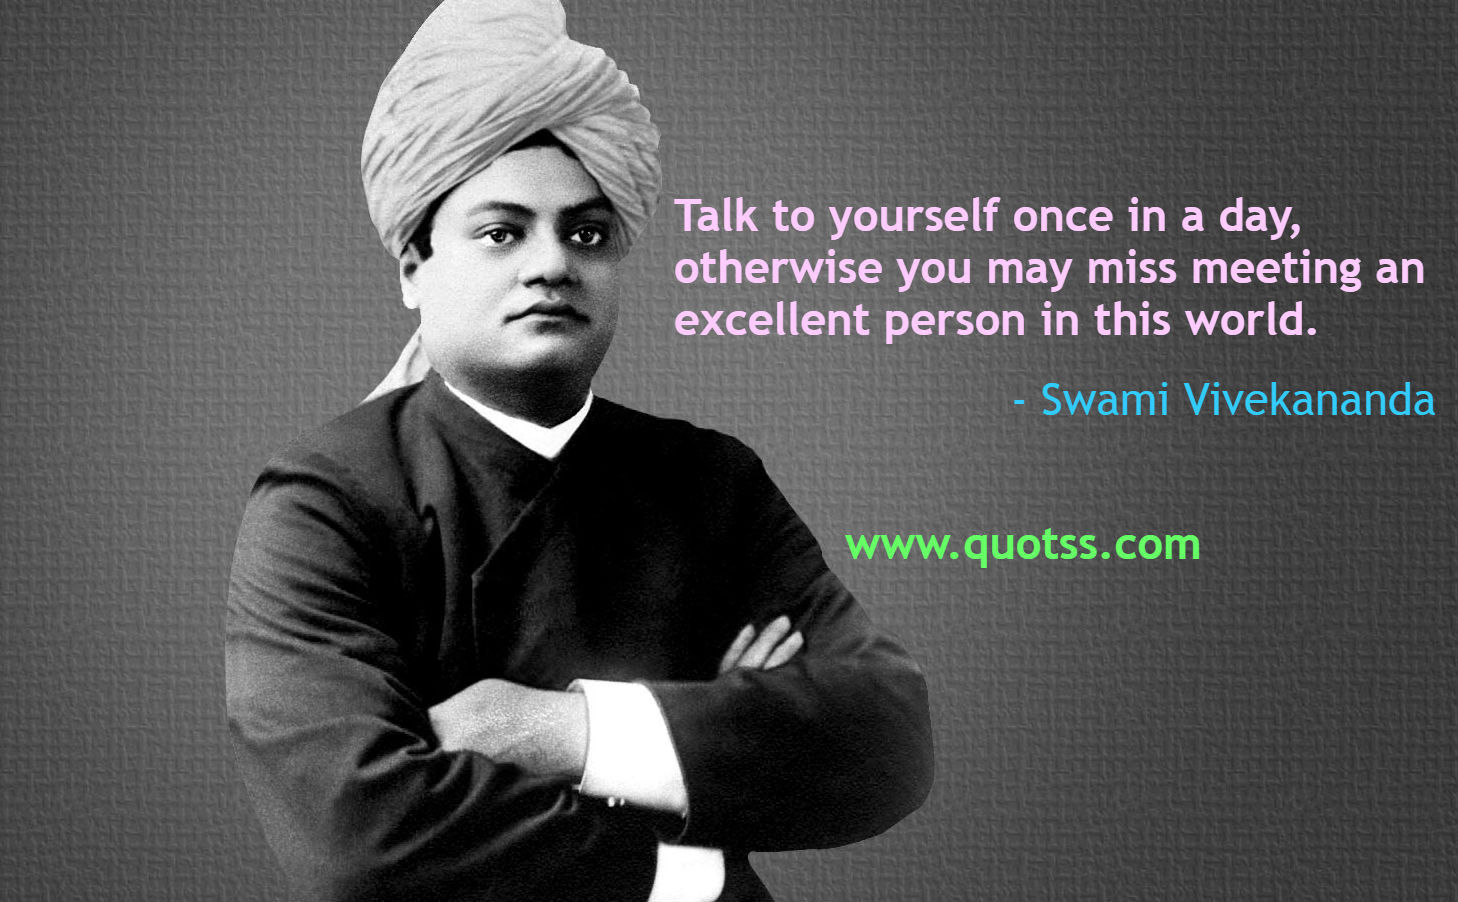 Quotes Vivekananda Top 10 Inspiring Quotesswami Vivekananda On Self Motivation